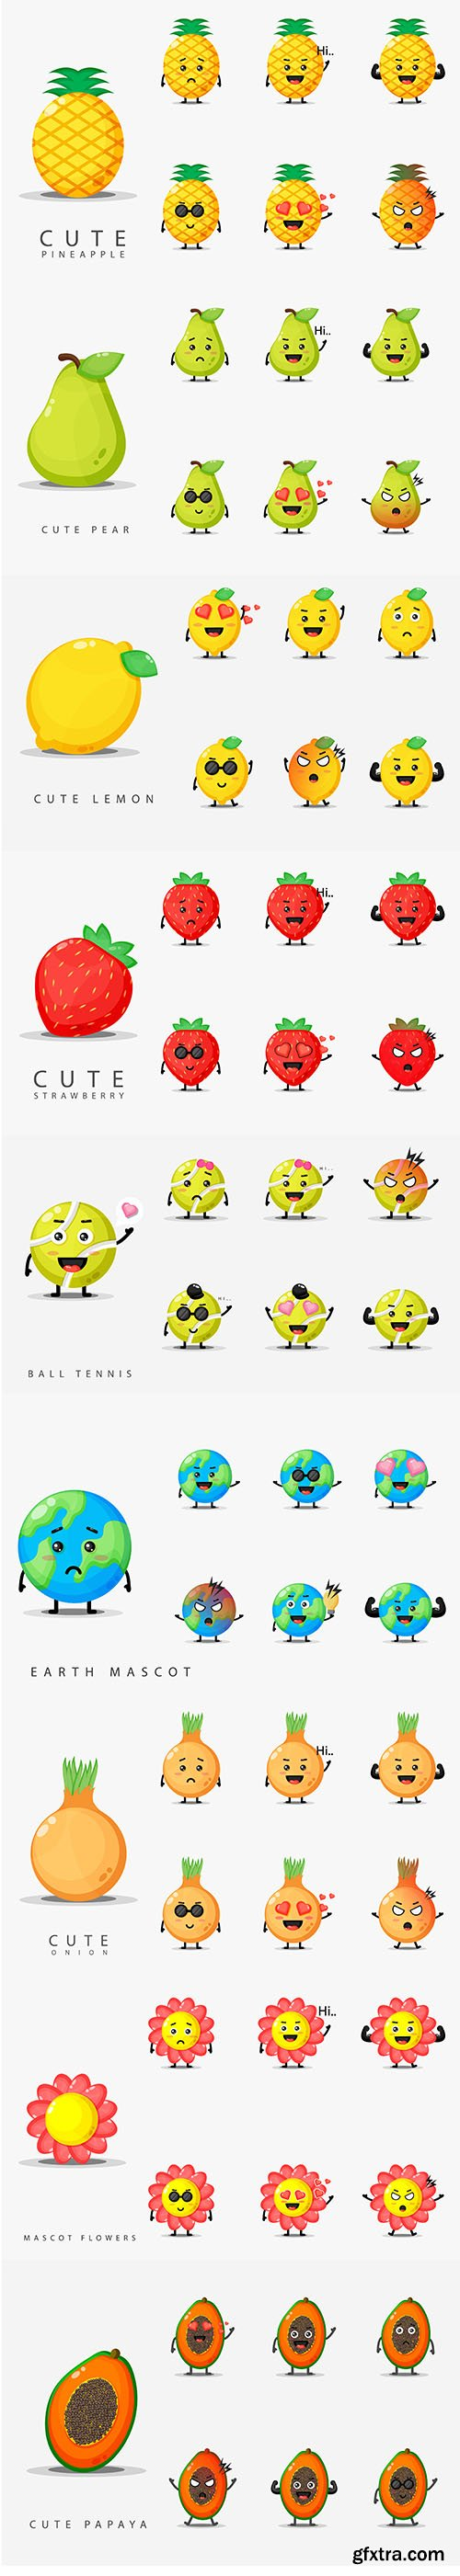 Set Of Cute Face Mascot Design